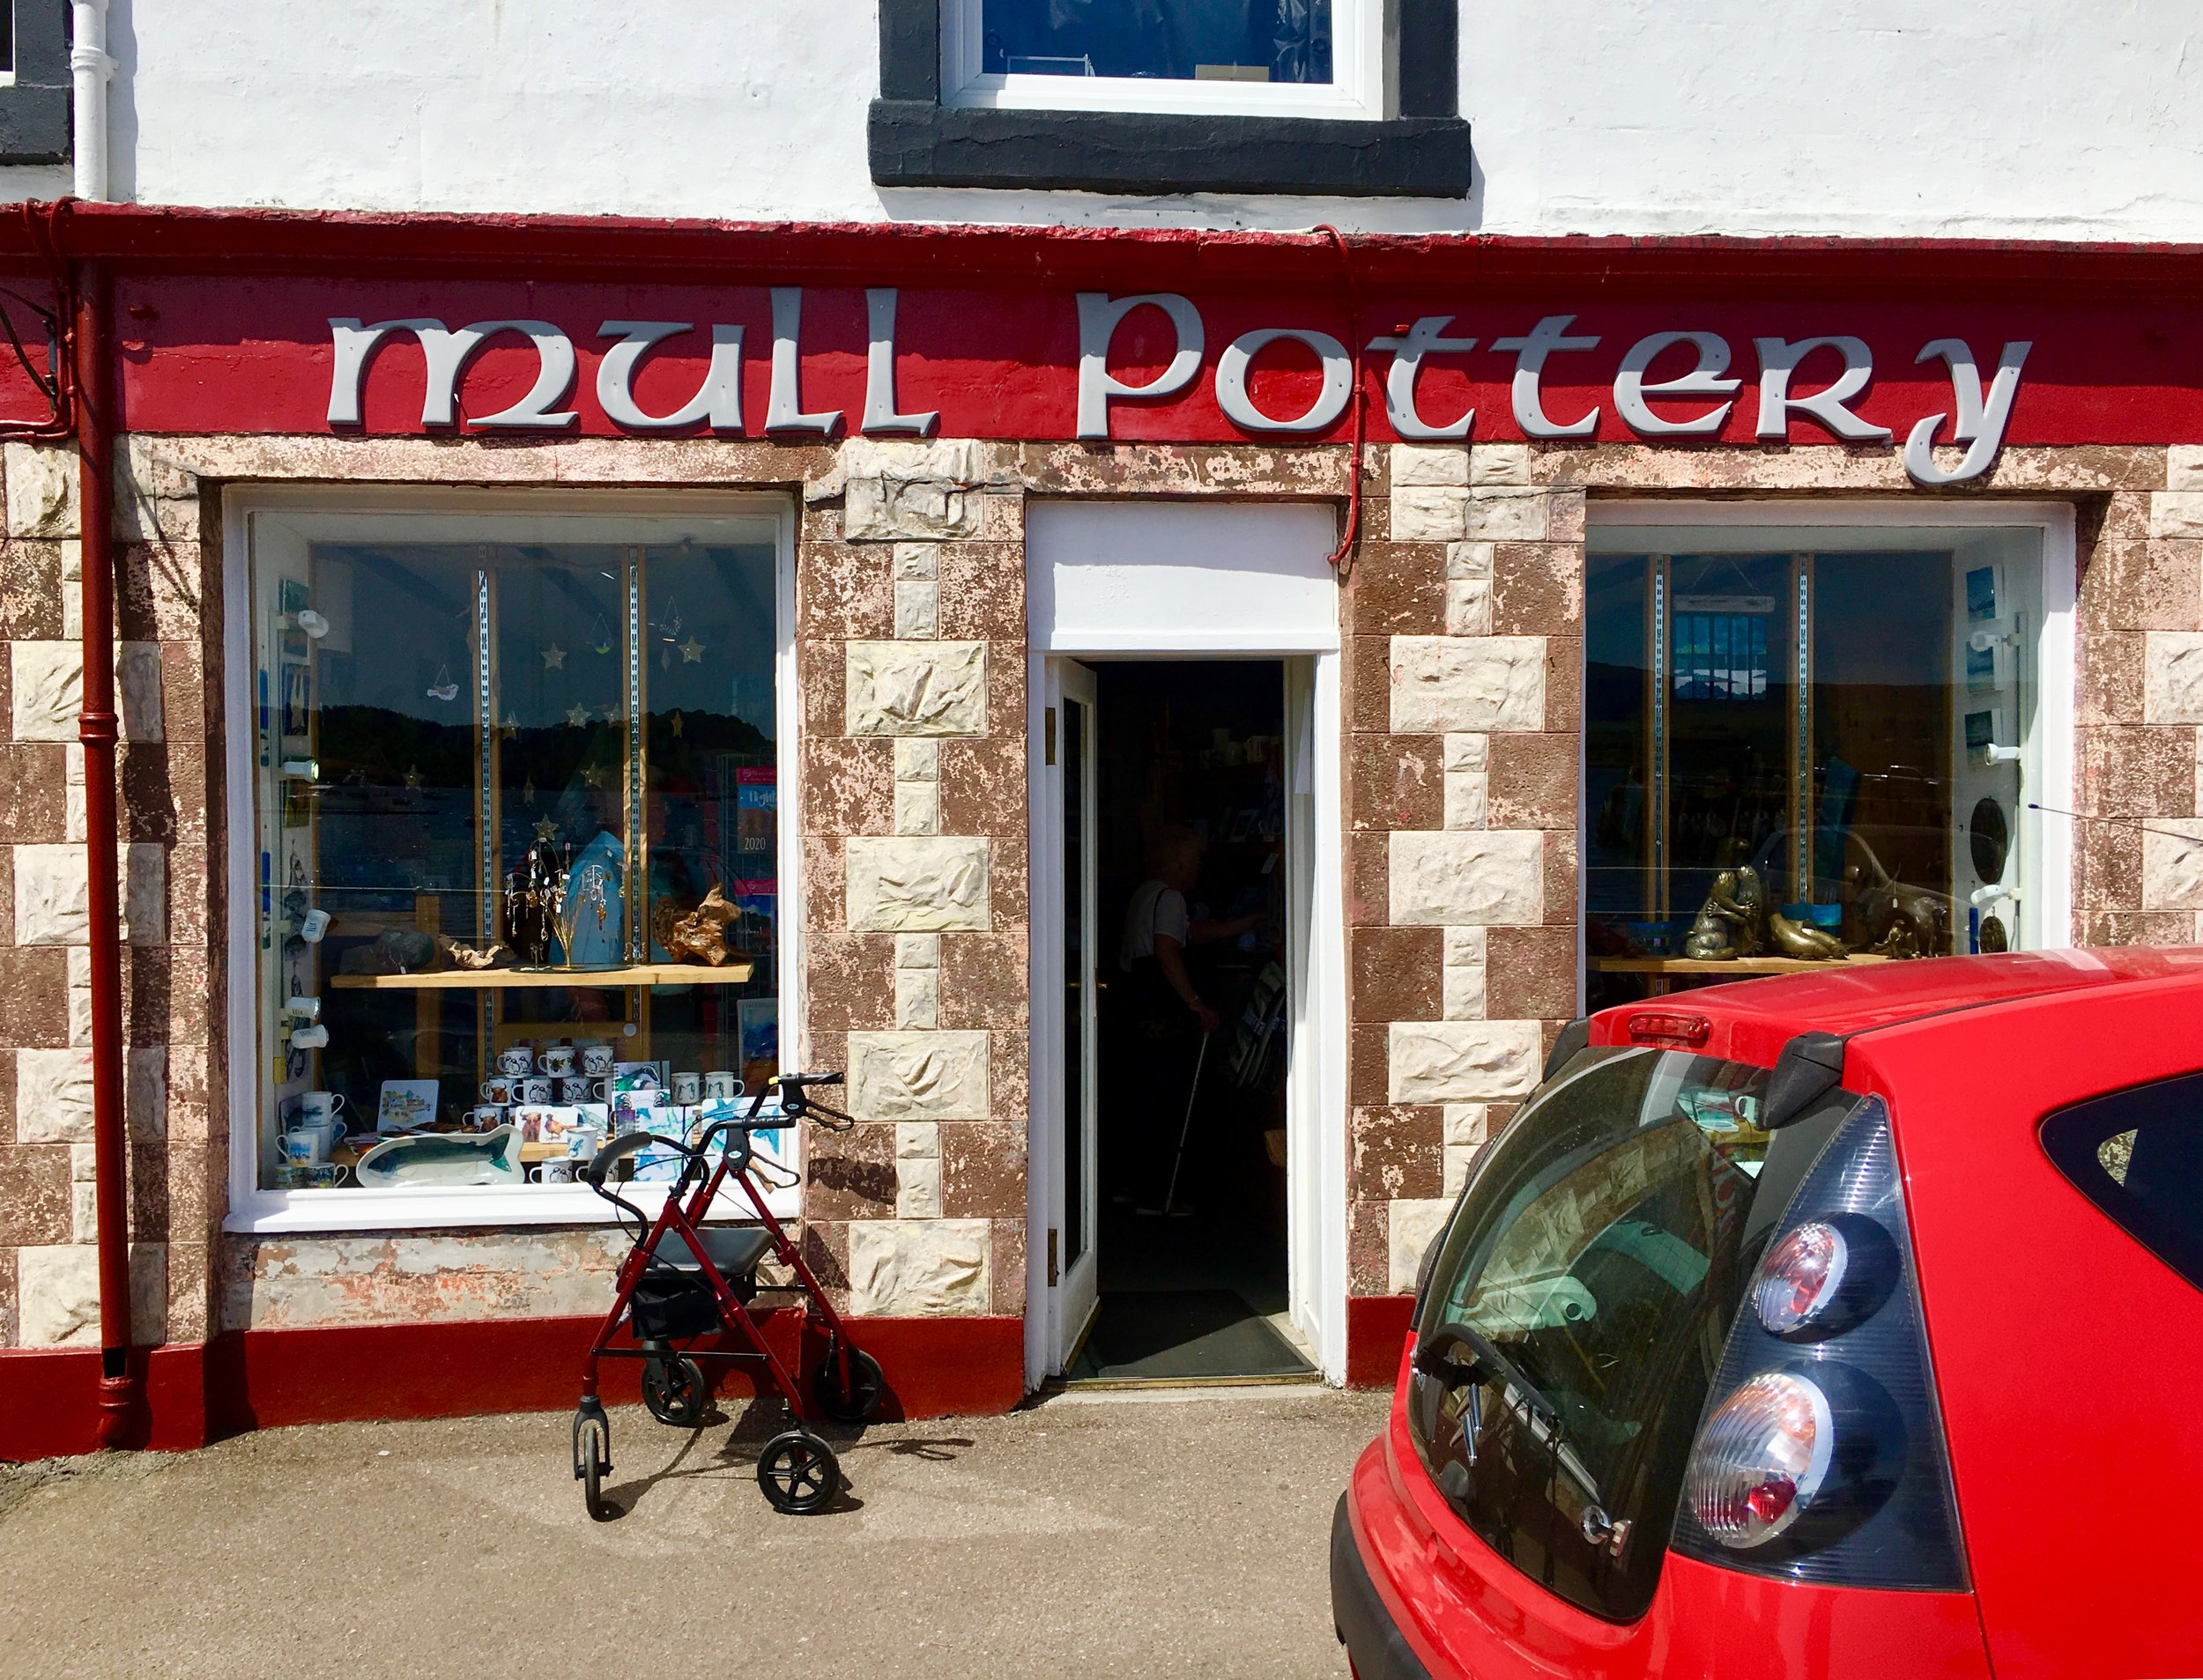 The welcoming storefront of Mull Pottery.